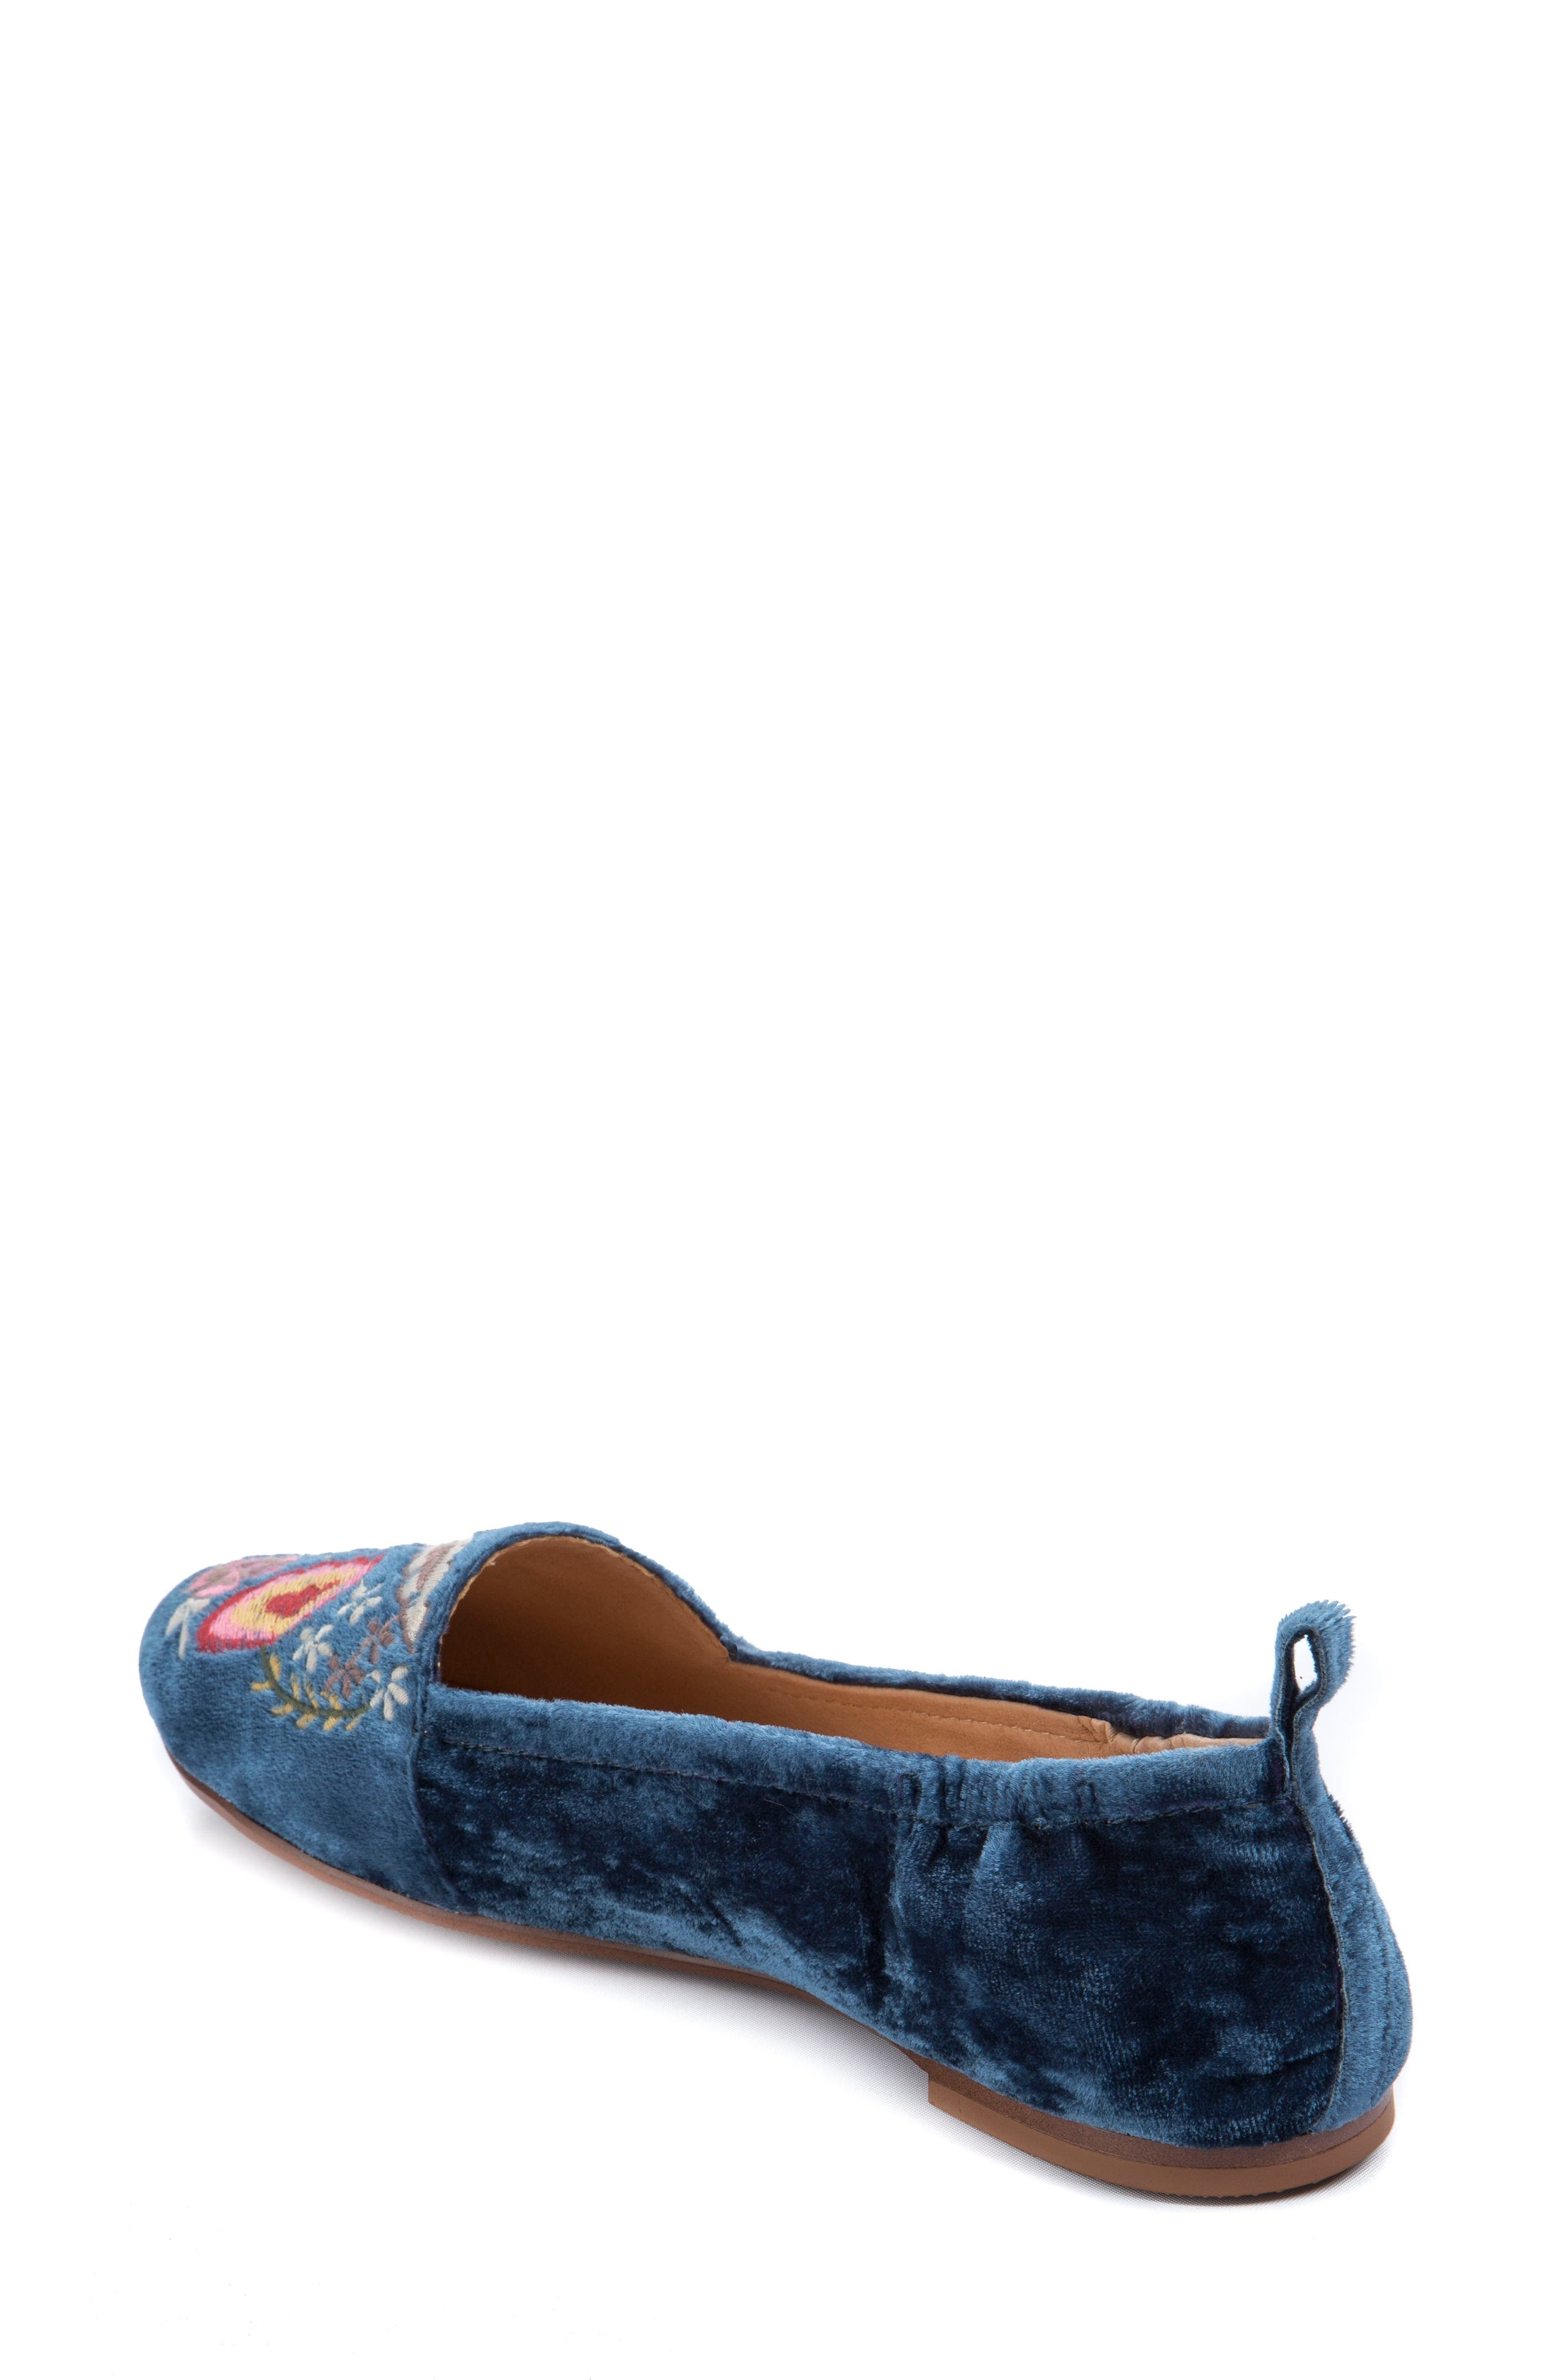 Gayla Floral Embroidered Flat,                             Alternate thumbnail 4, color,